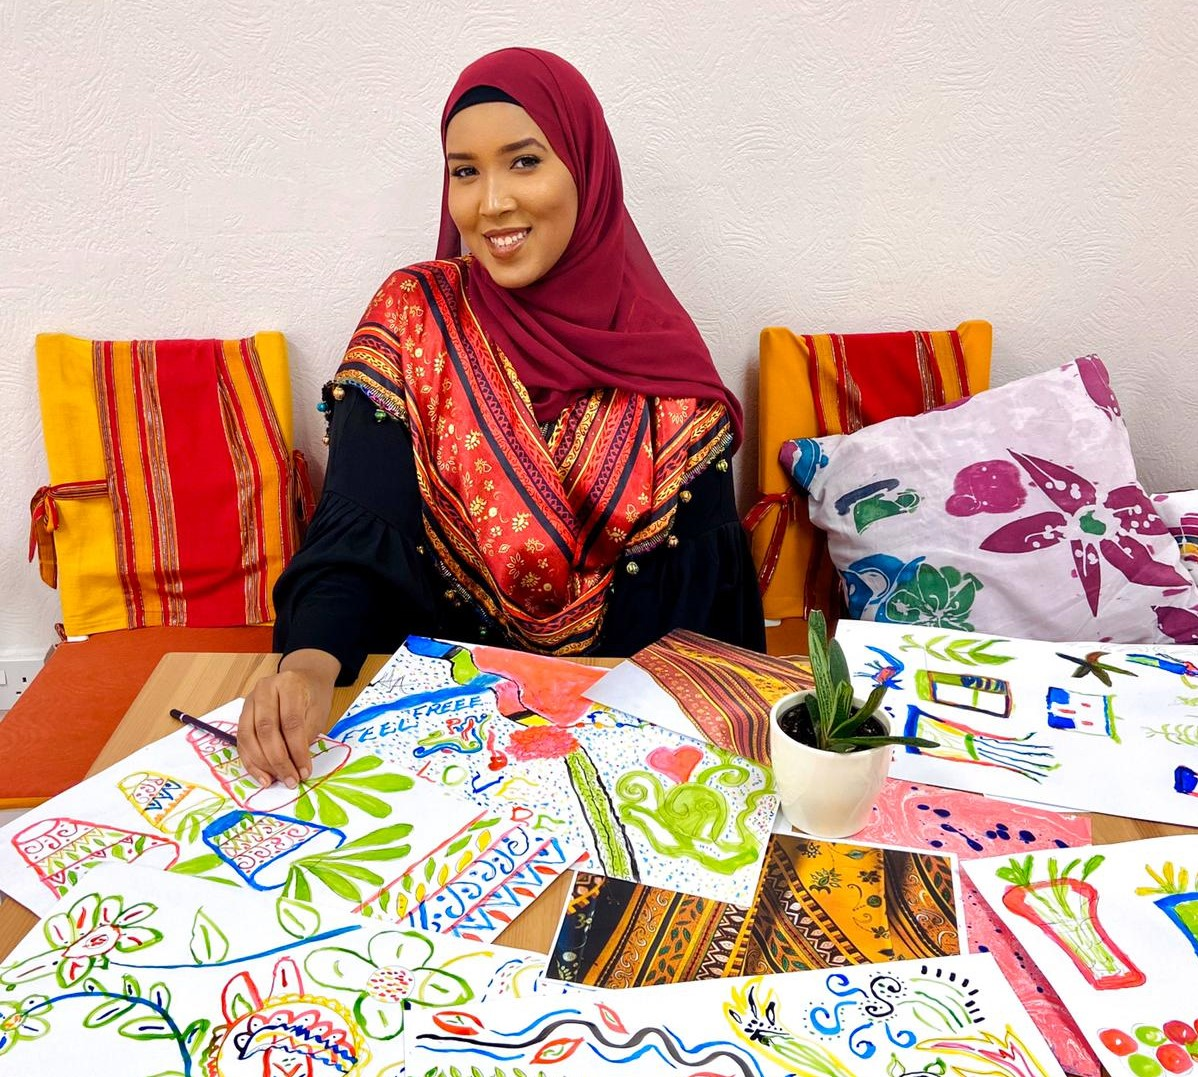 Hafza surrounded by artwork created at one of her workshops